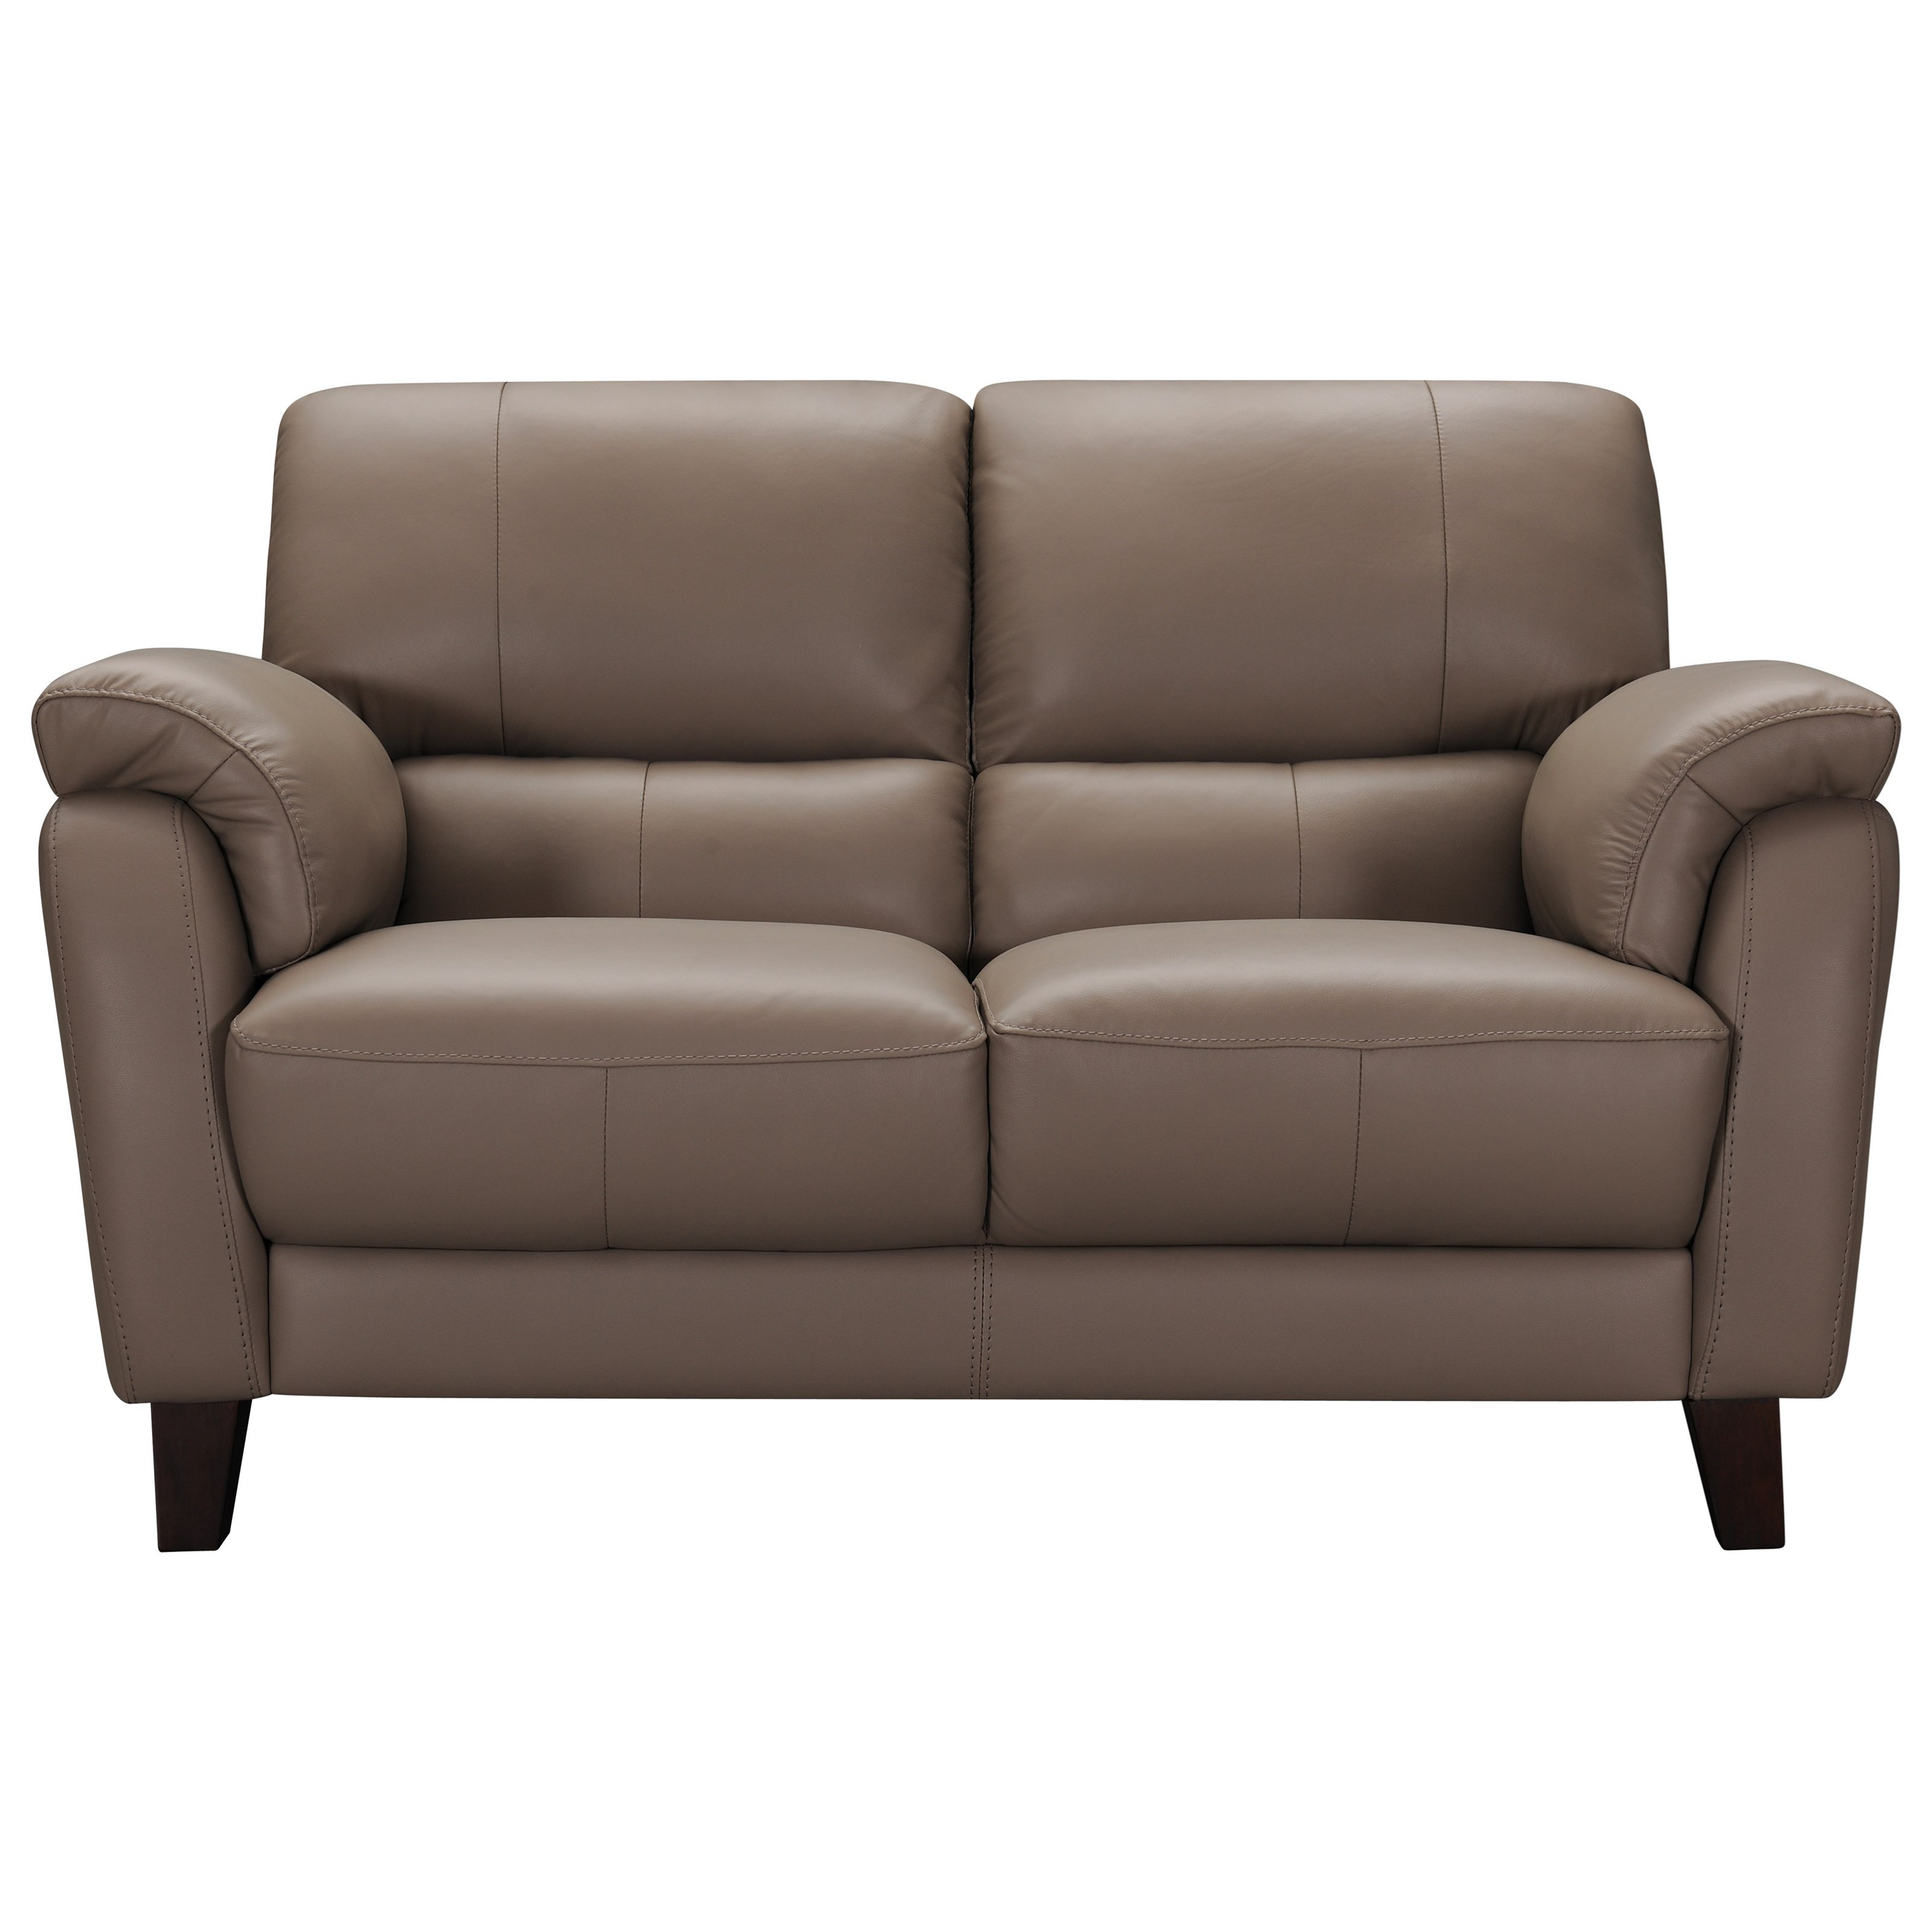 31933 Loveseat by Violino at Furniture Superstore - Rochester, MN